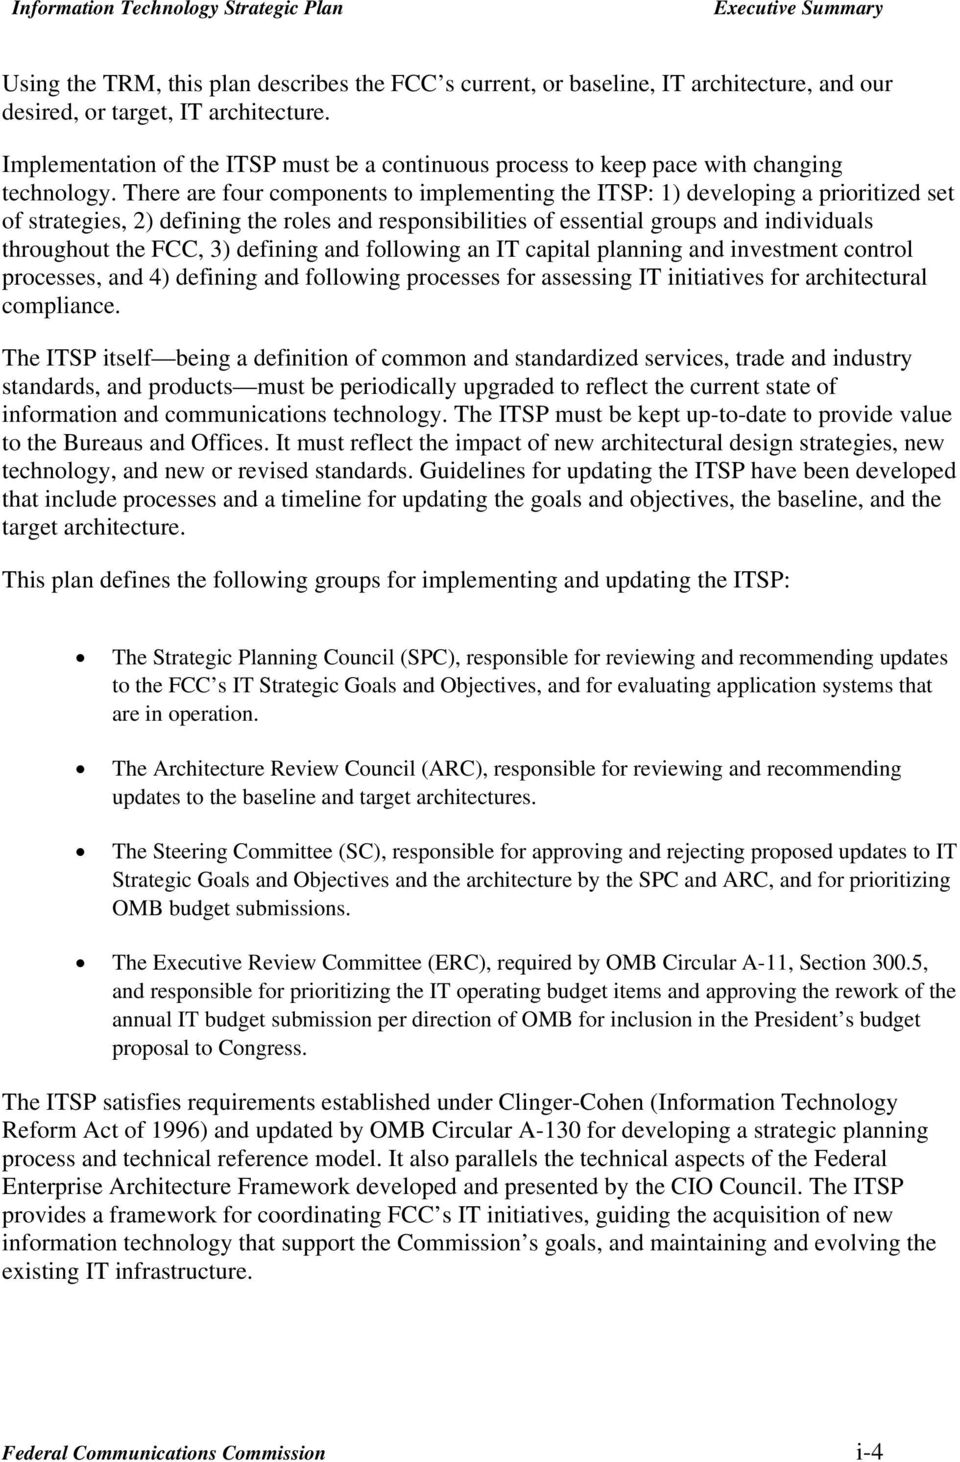 There are four components to implementing the ITSP: 1) developing a prioritized set of strategies, 2) defining the roles and responsibilities of essential groups and individuals throughout the FCC,